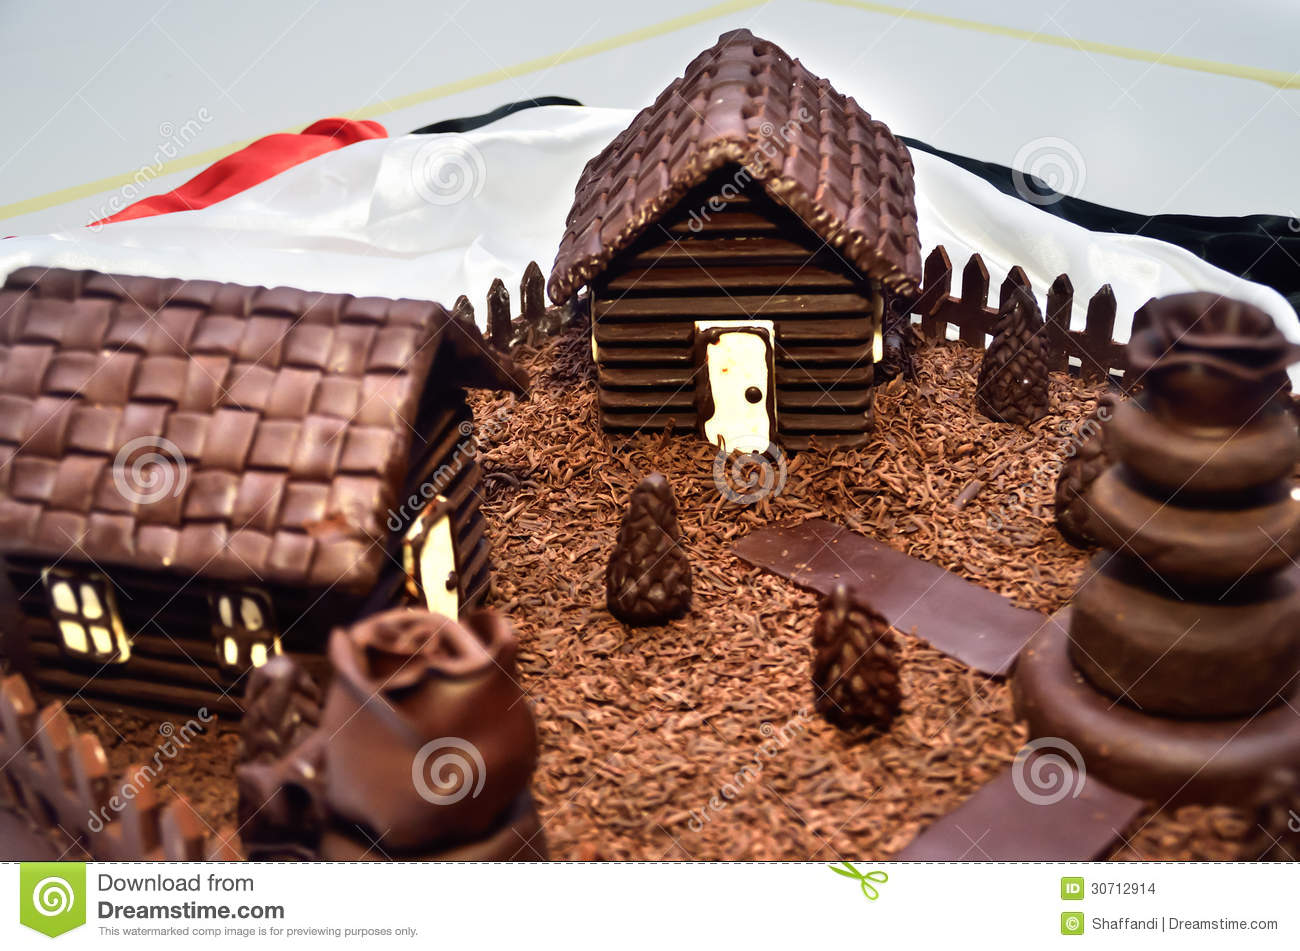 Chocolate House Stock Images - Image: 30712914